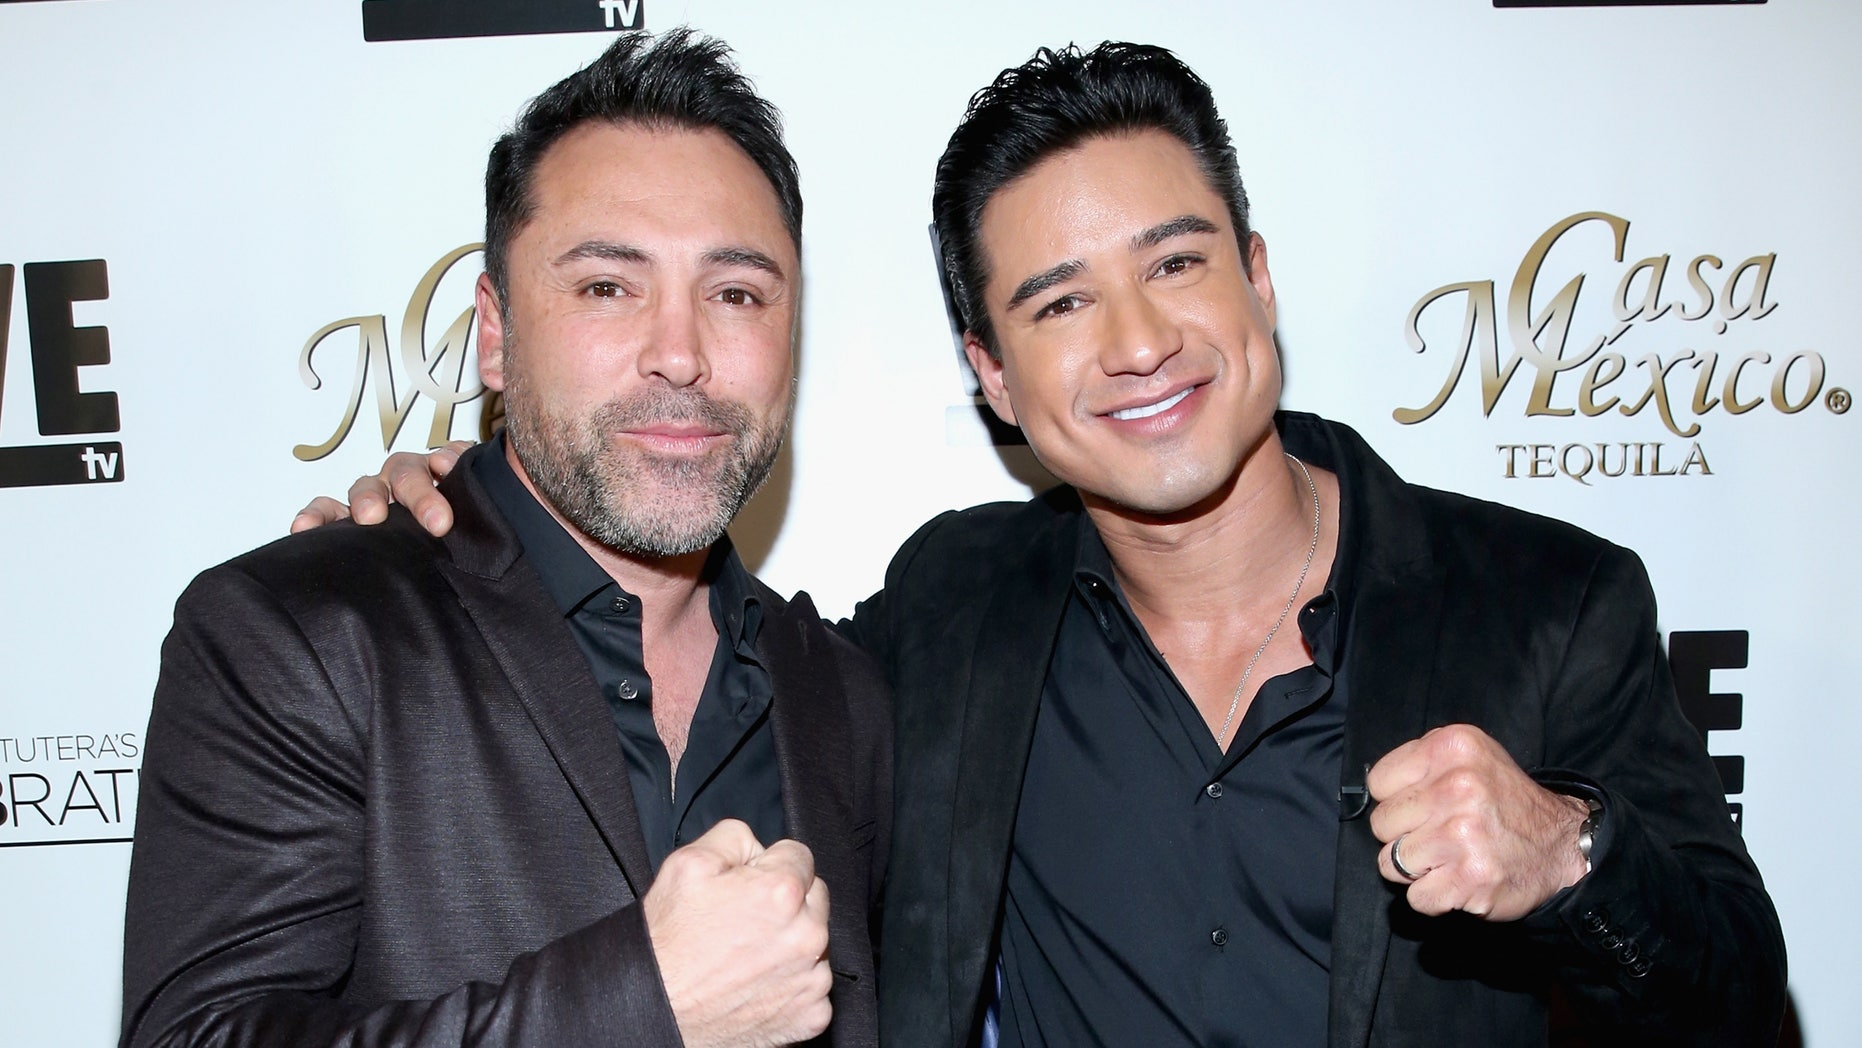 Oscar De La Hoya and Mario Lopez on November 6, 2015 in Hollywood, California.